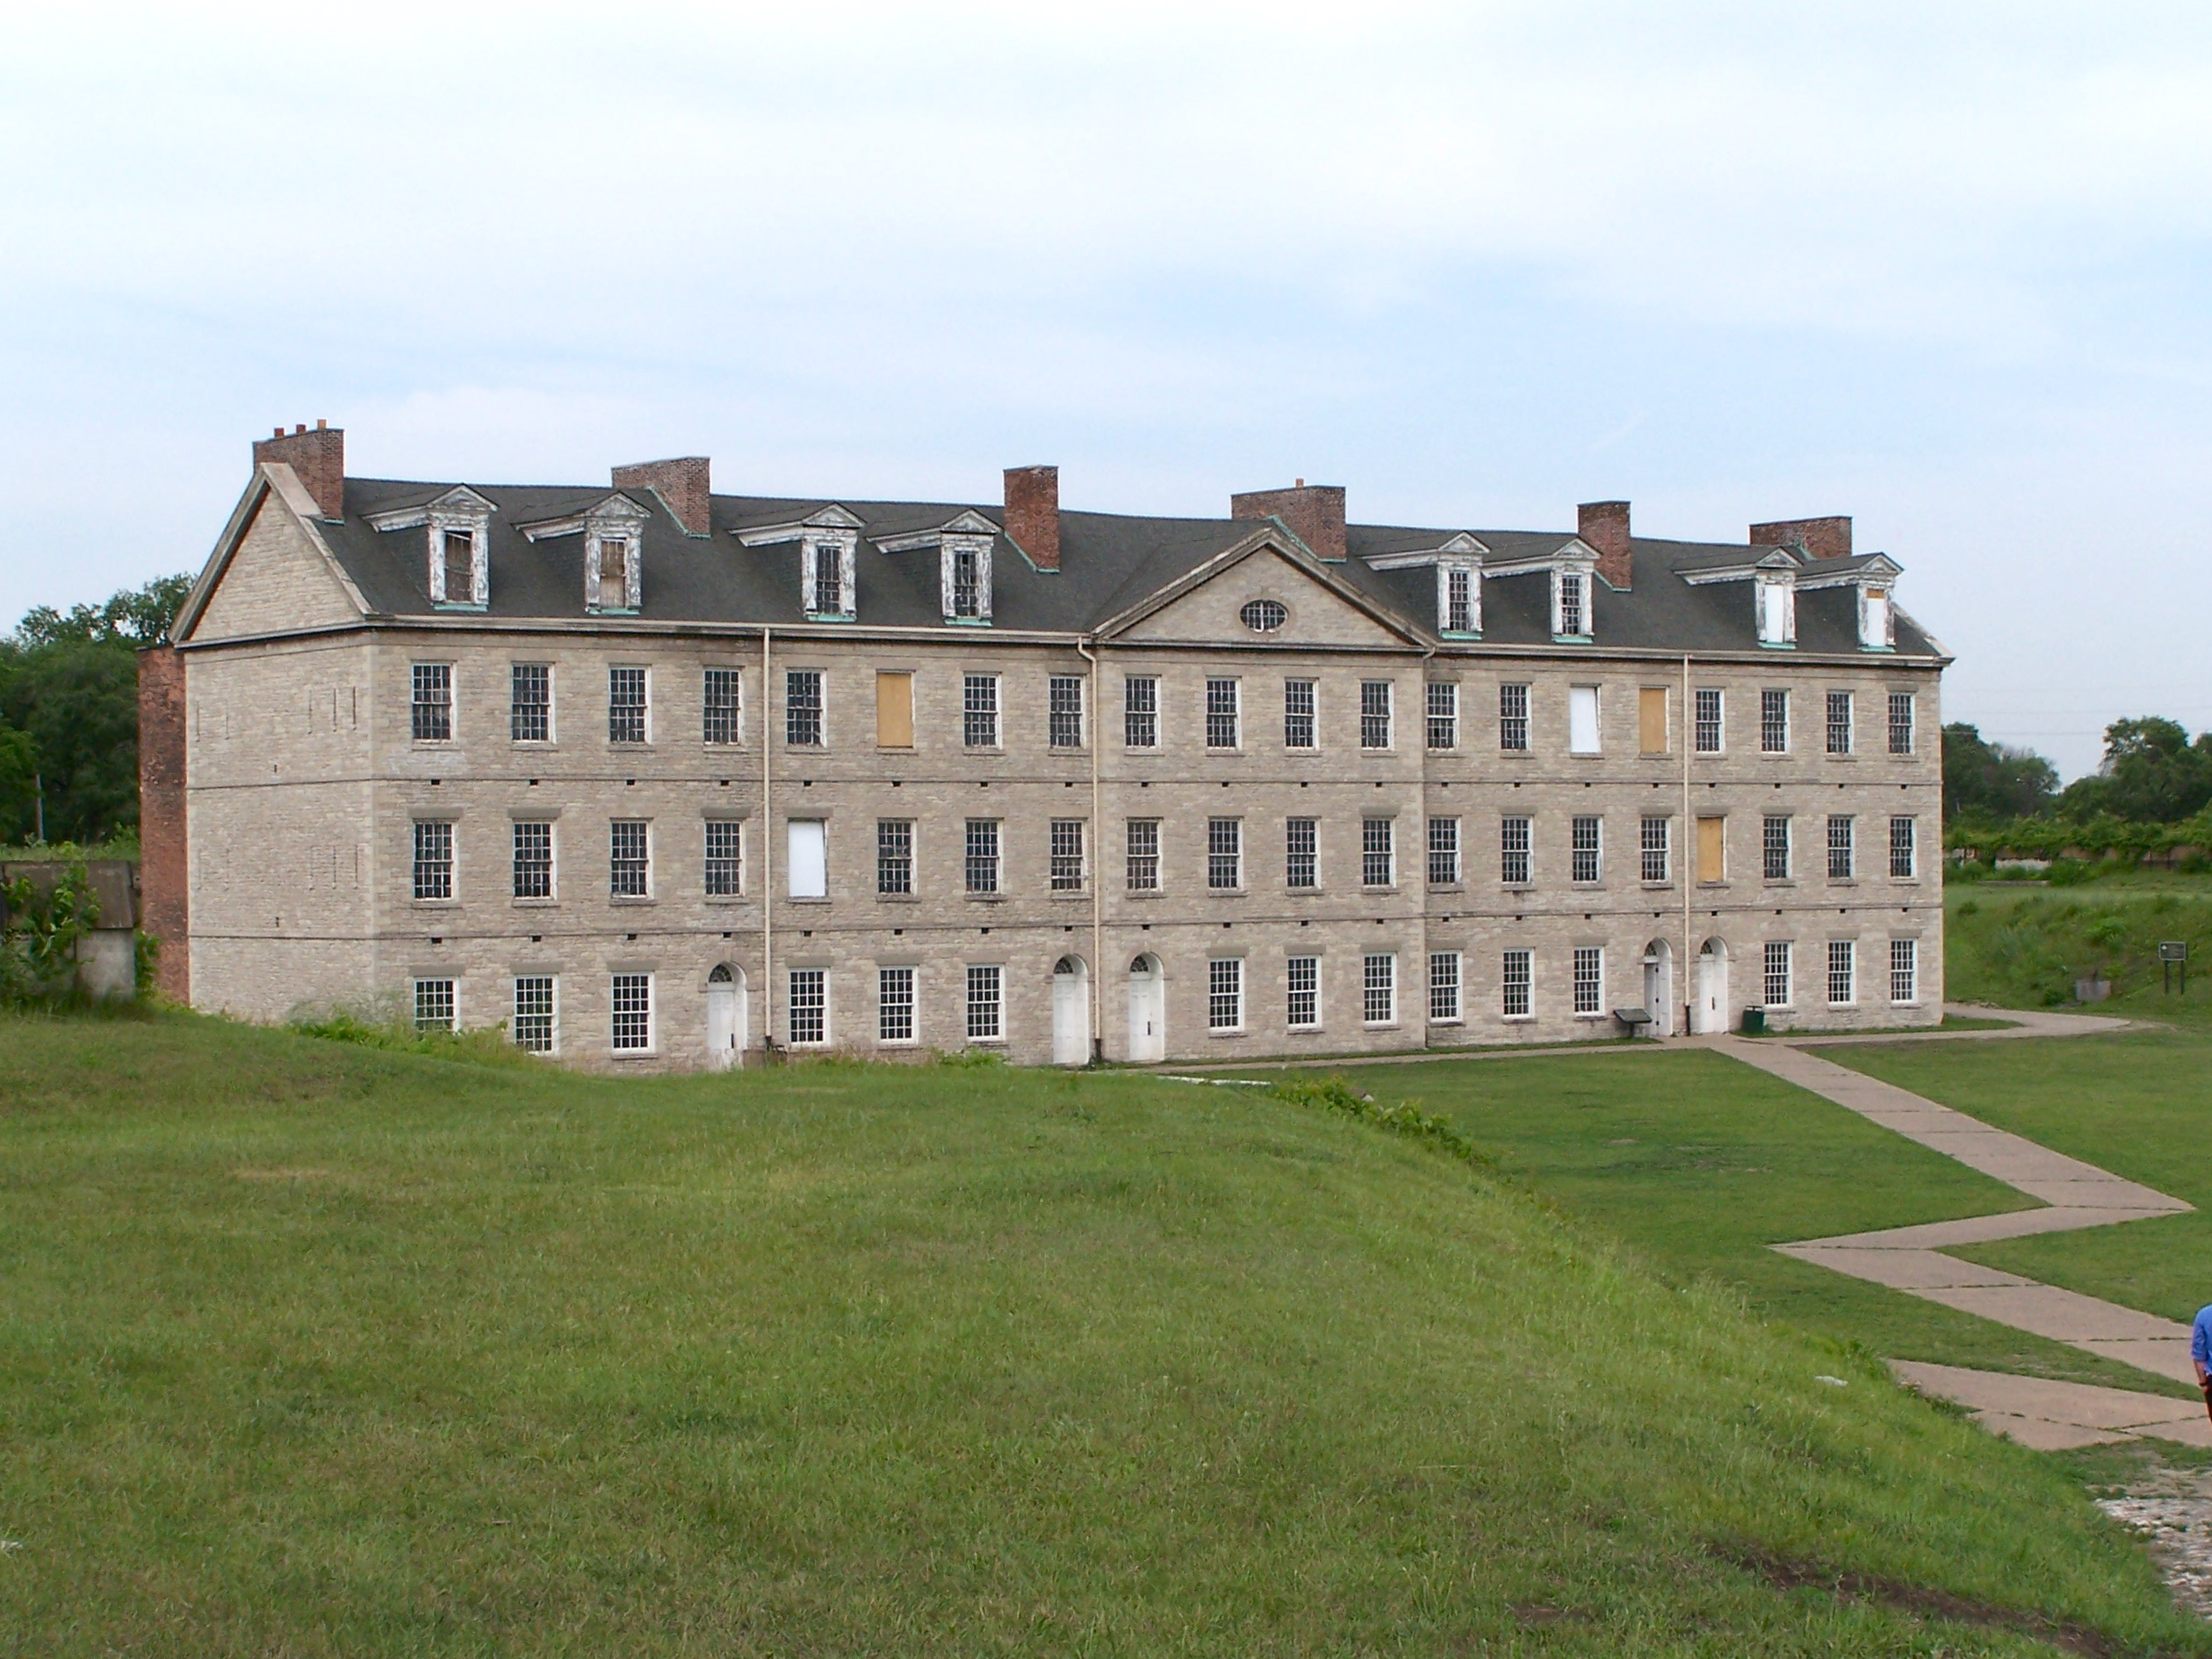 The Barracks of Fort Wayne